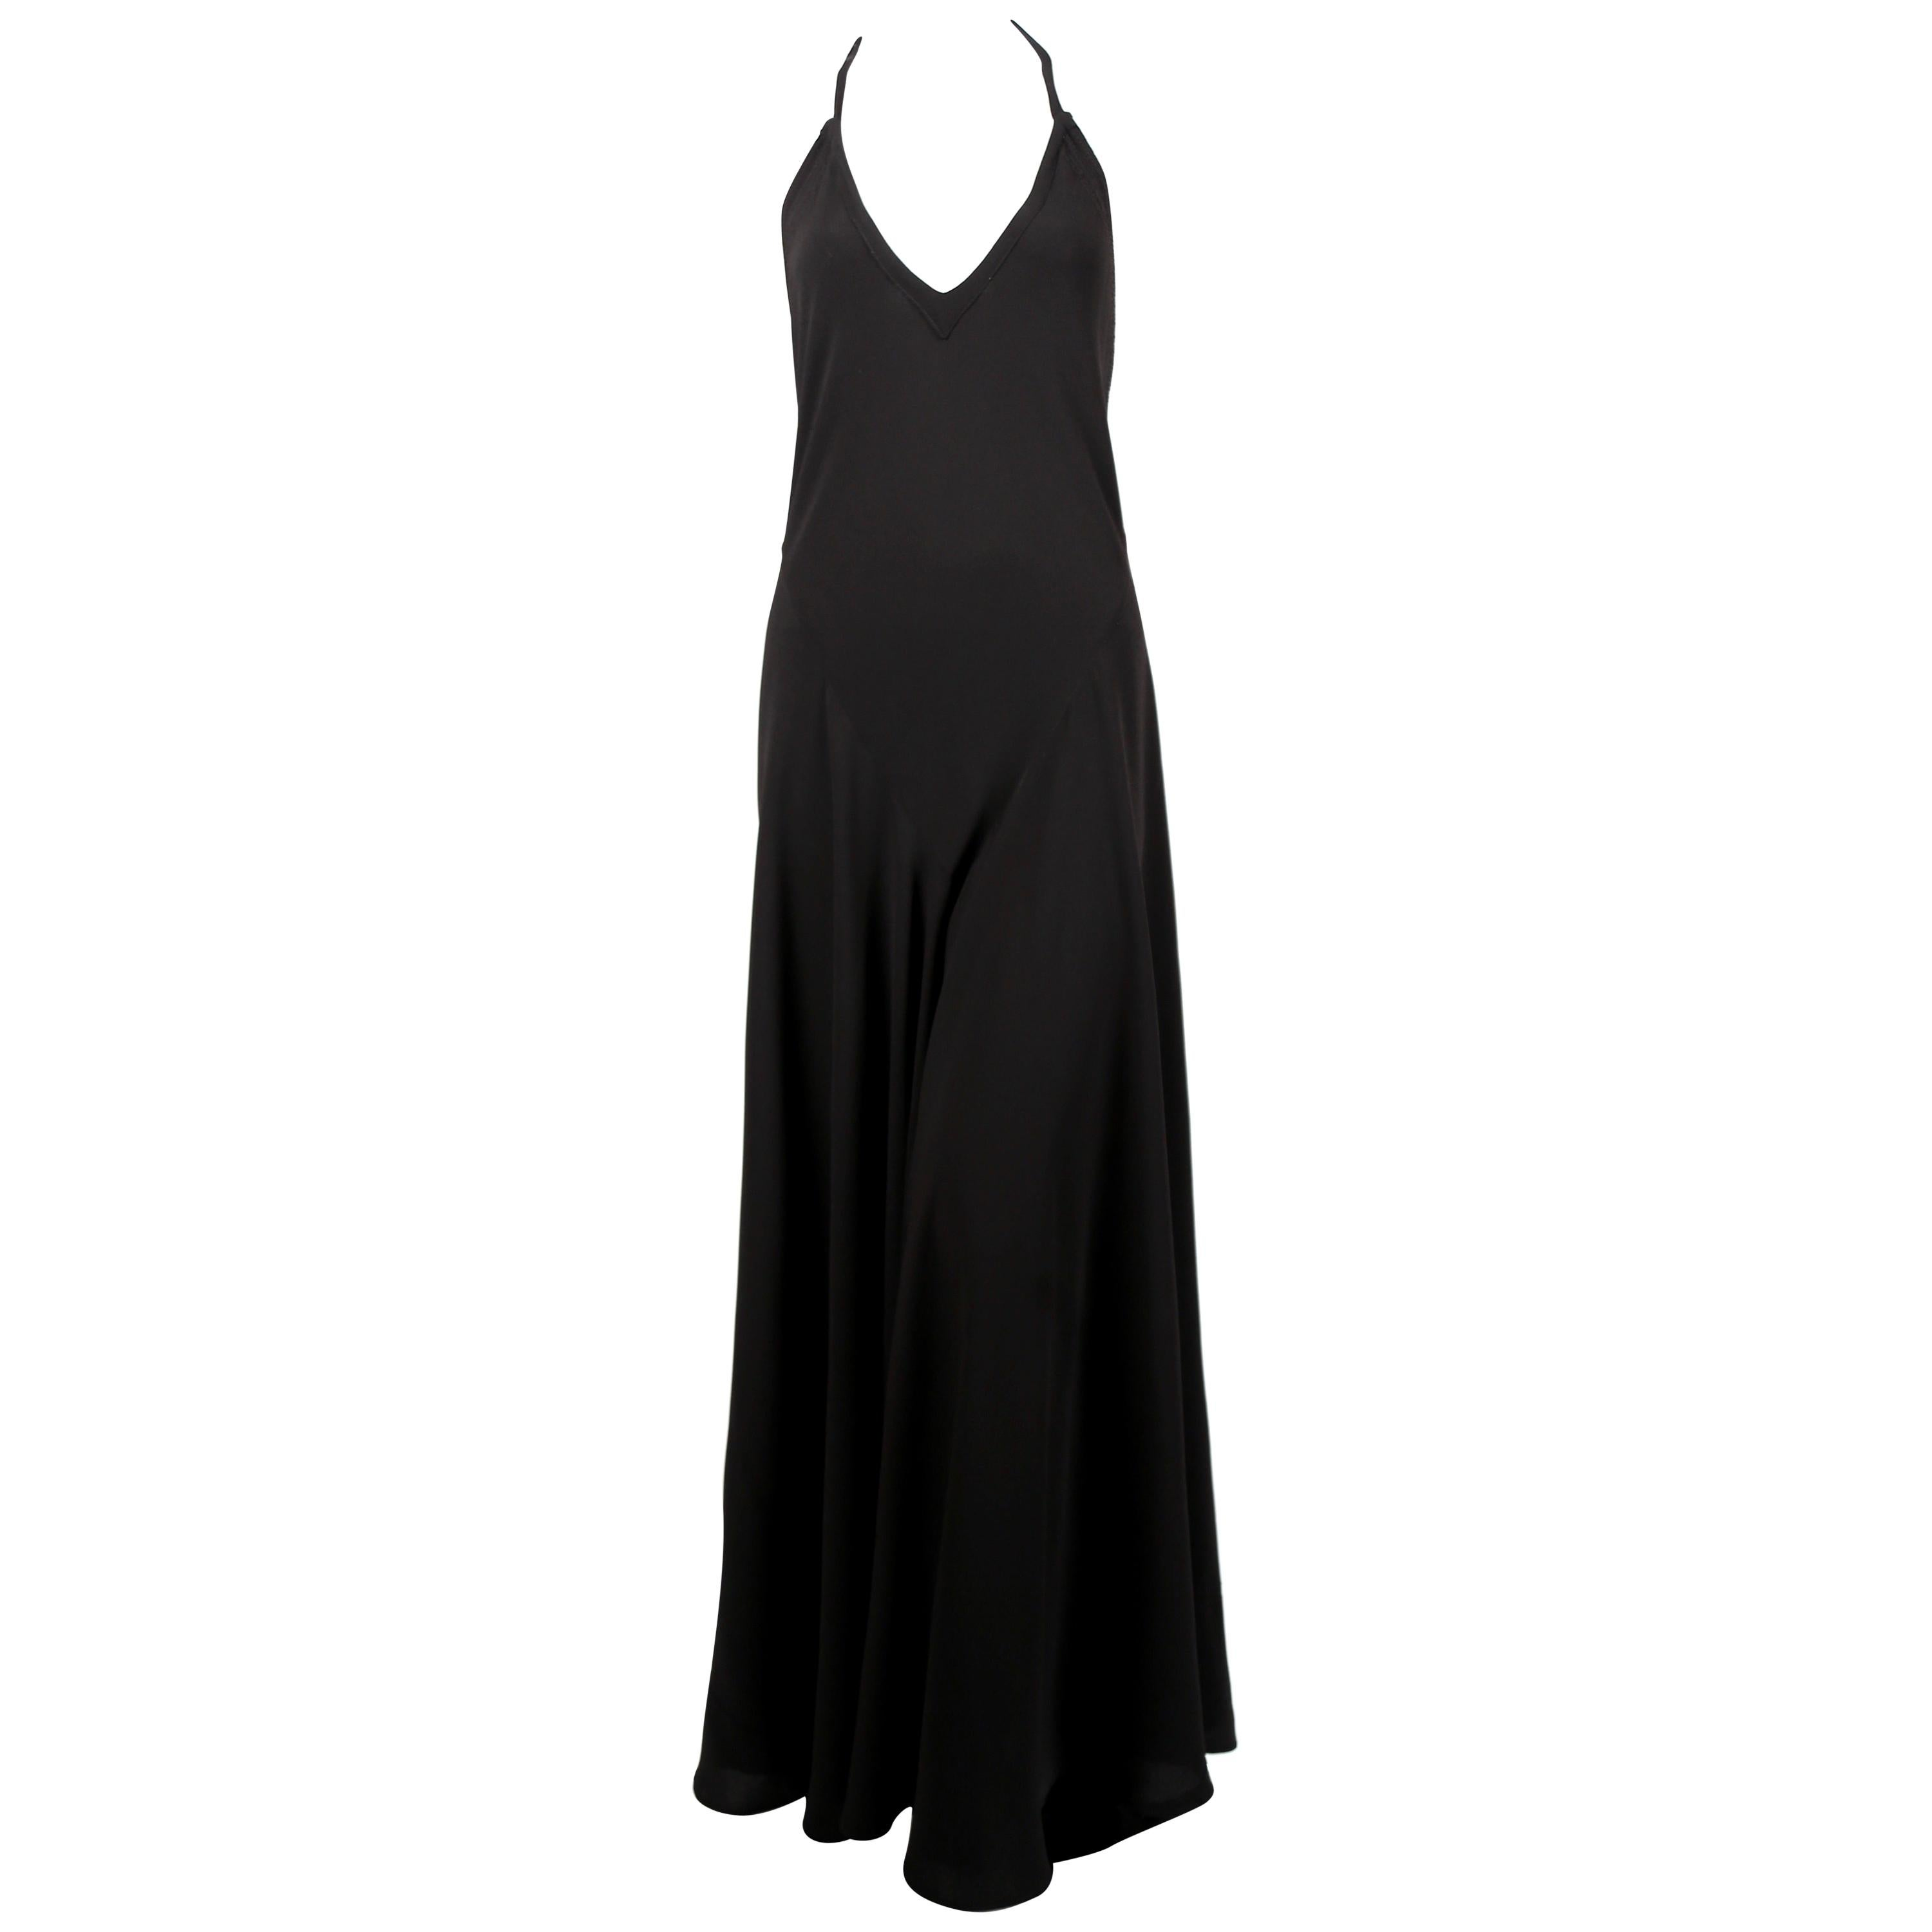 1970's OSSIE CLARK For QUORUM black bias-cut maxi gown with low back